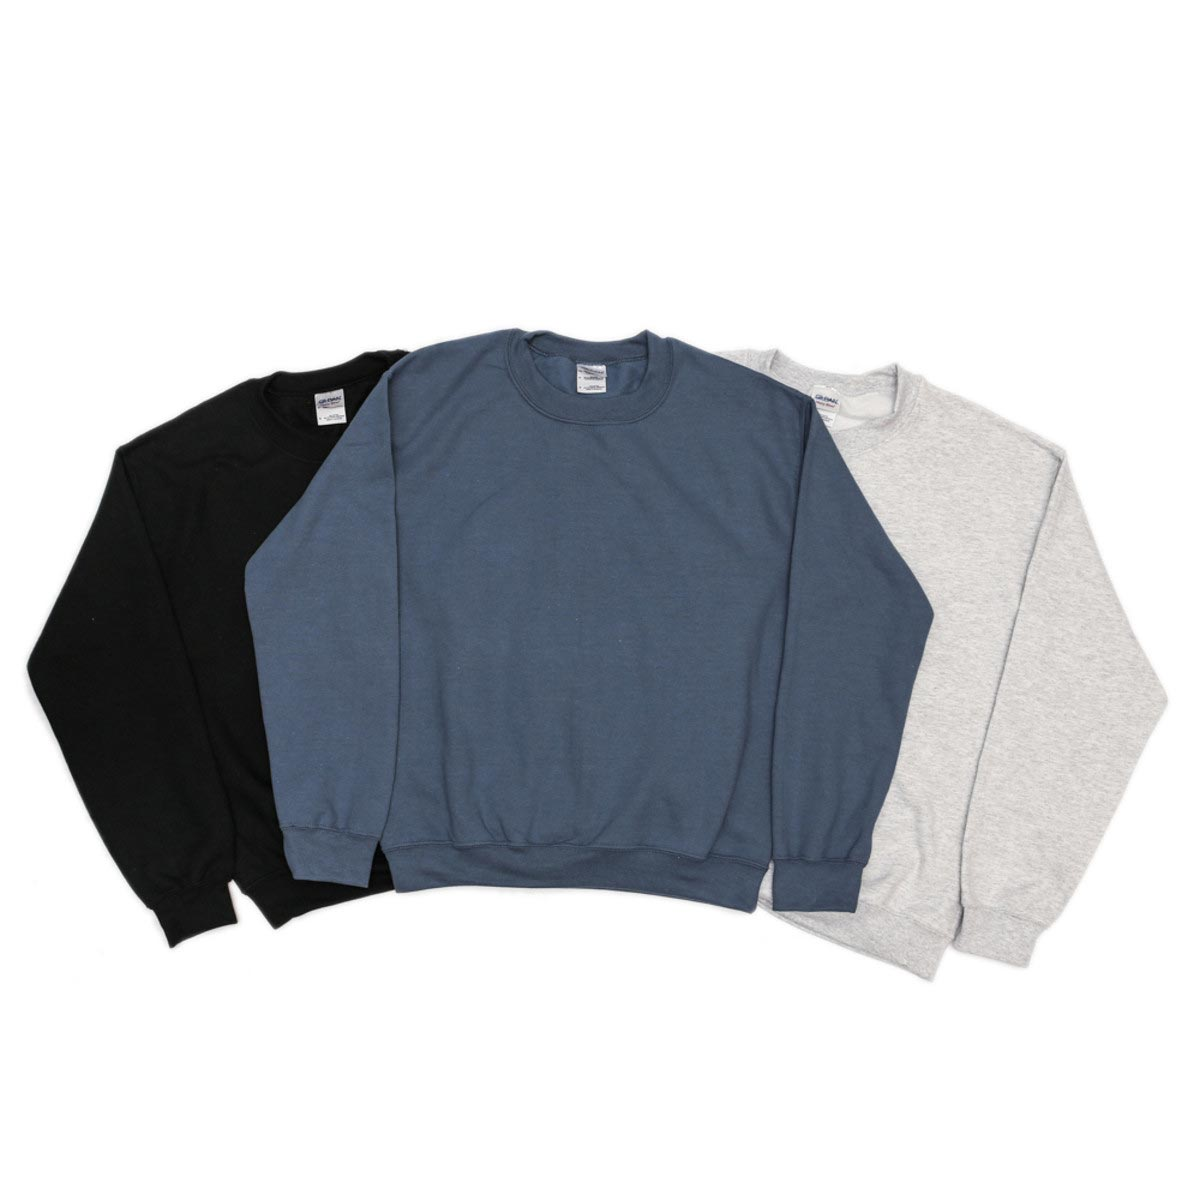 100 x Gildan Heavy Sweatshirts Deal